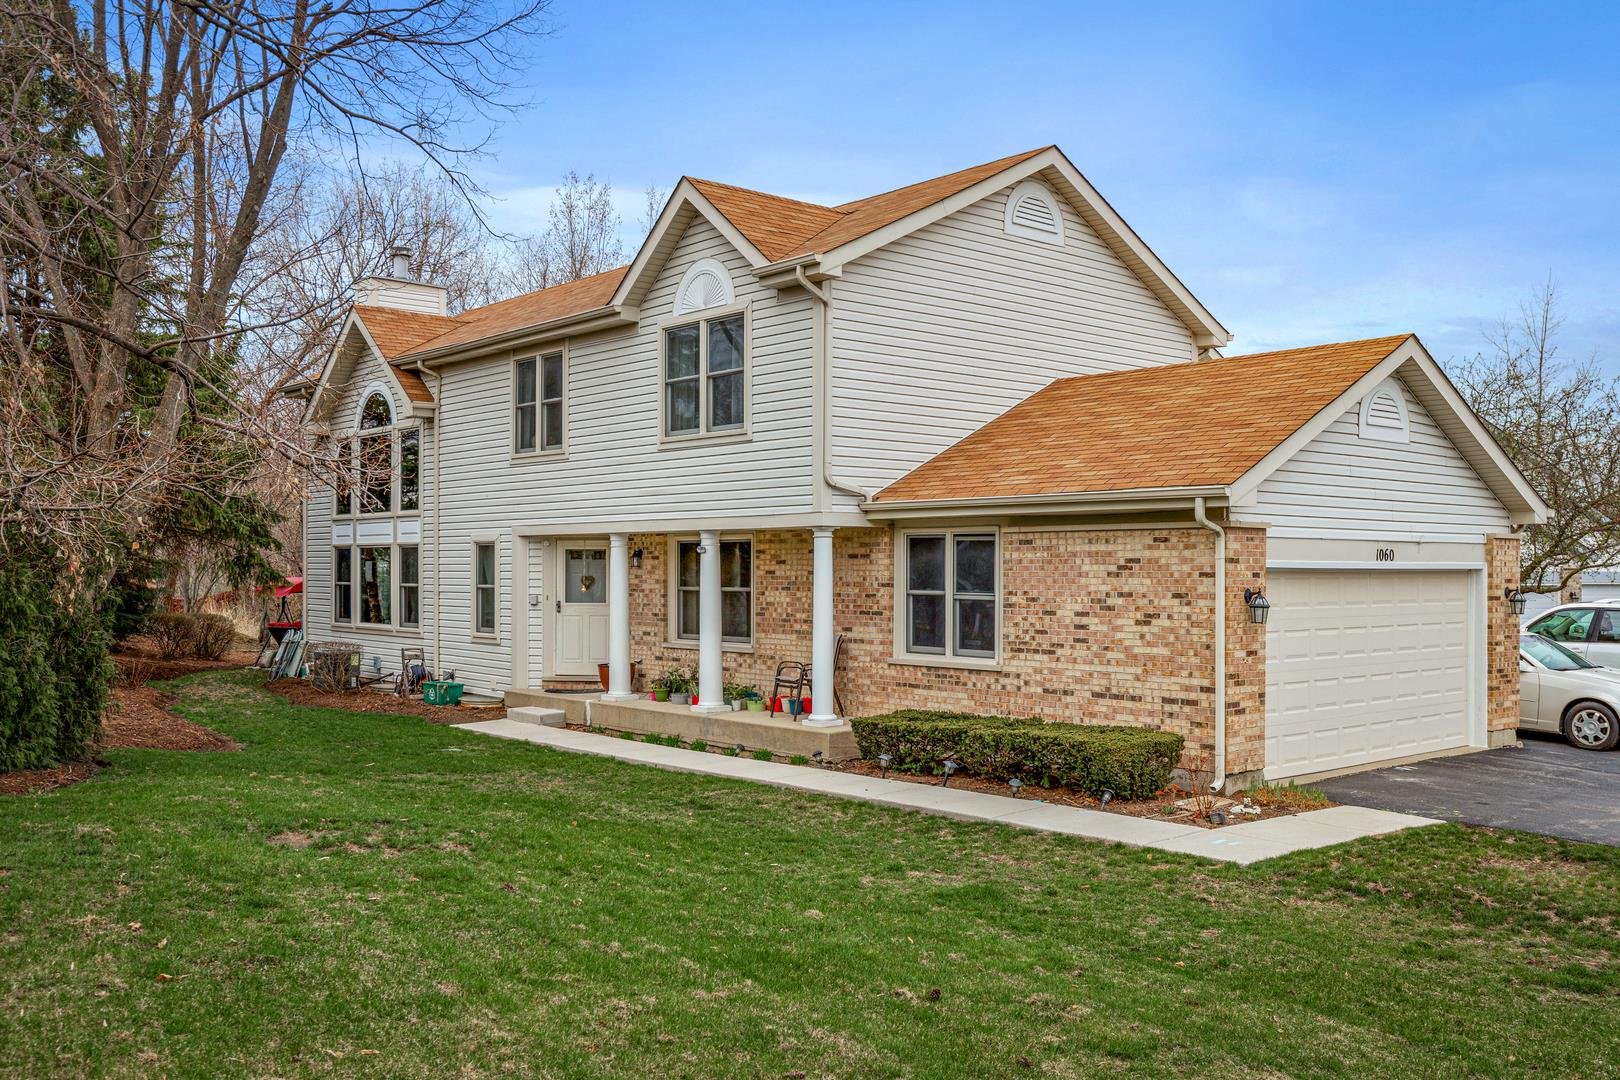 1060 Sweetflower Drive, Hoffman Estates, IL 60169 - #: 11046469